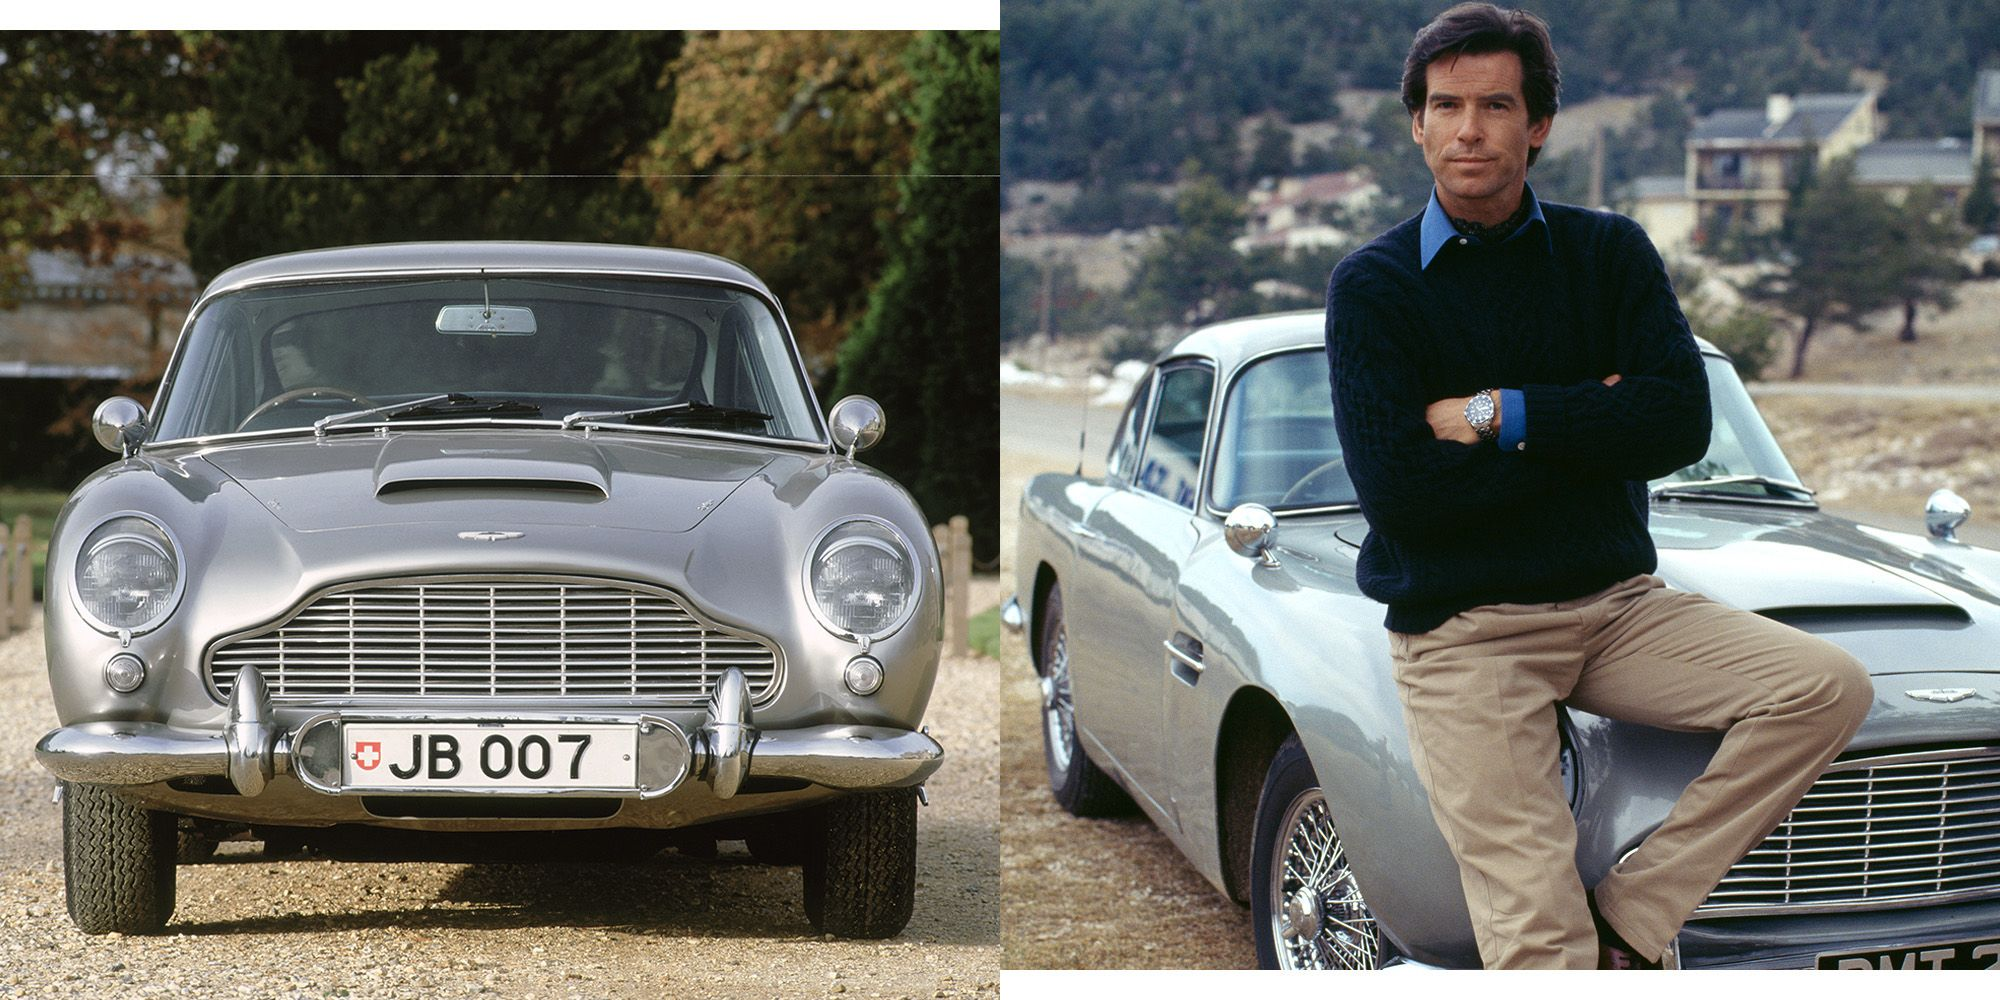 The 1965 Aston Martin Db5 From Goldeneye Is Up For Auction James Bond Car Auction